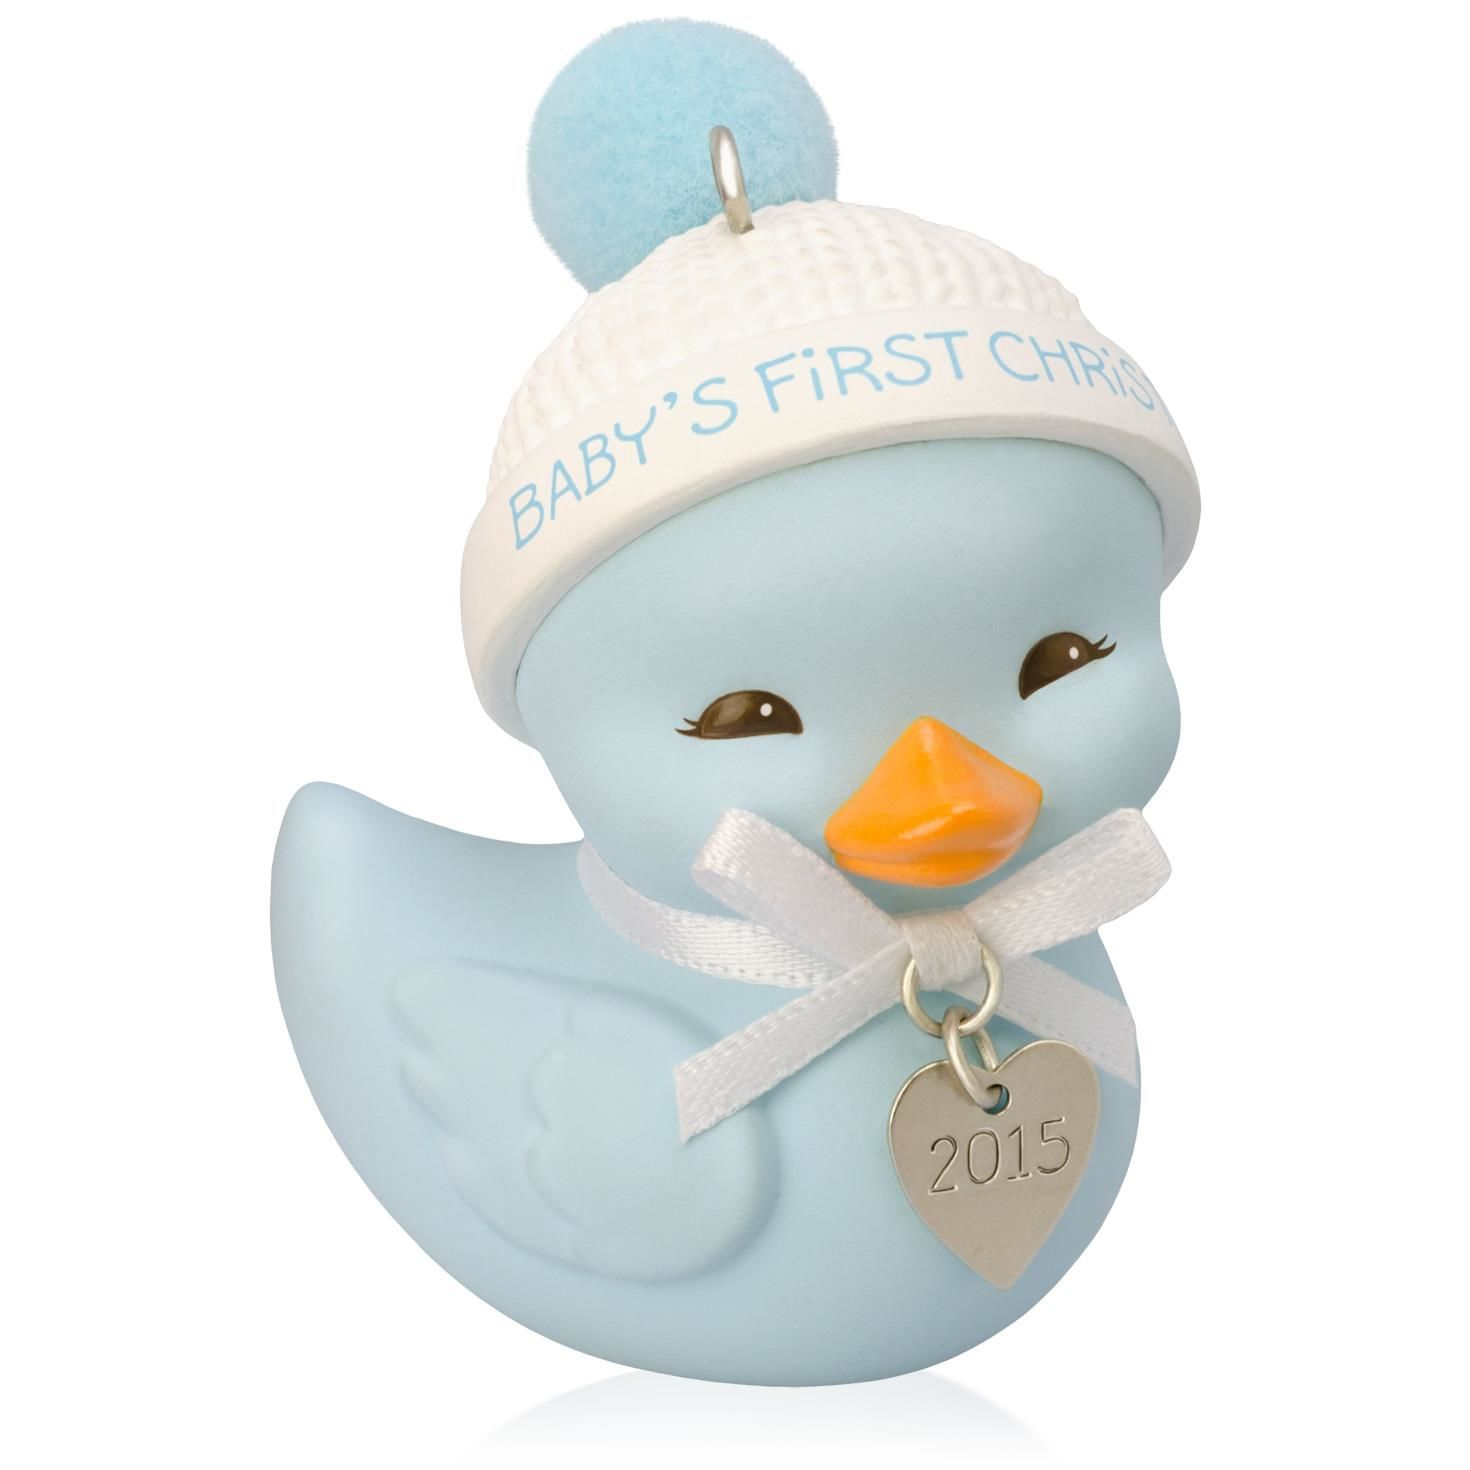 2015 baby boys first christmas scroll down for additional details - Baby Boy First Christmas Ornament